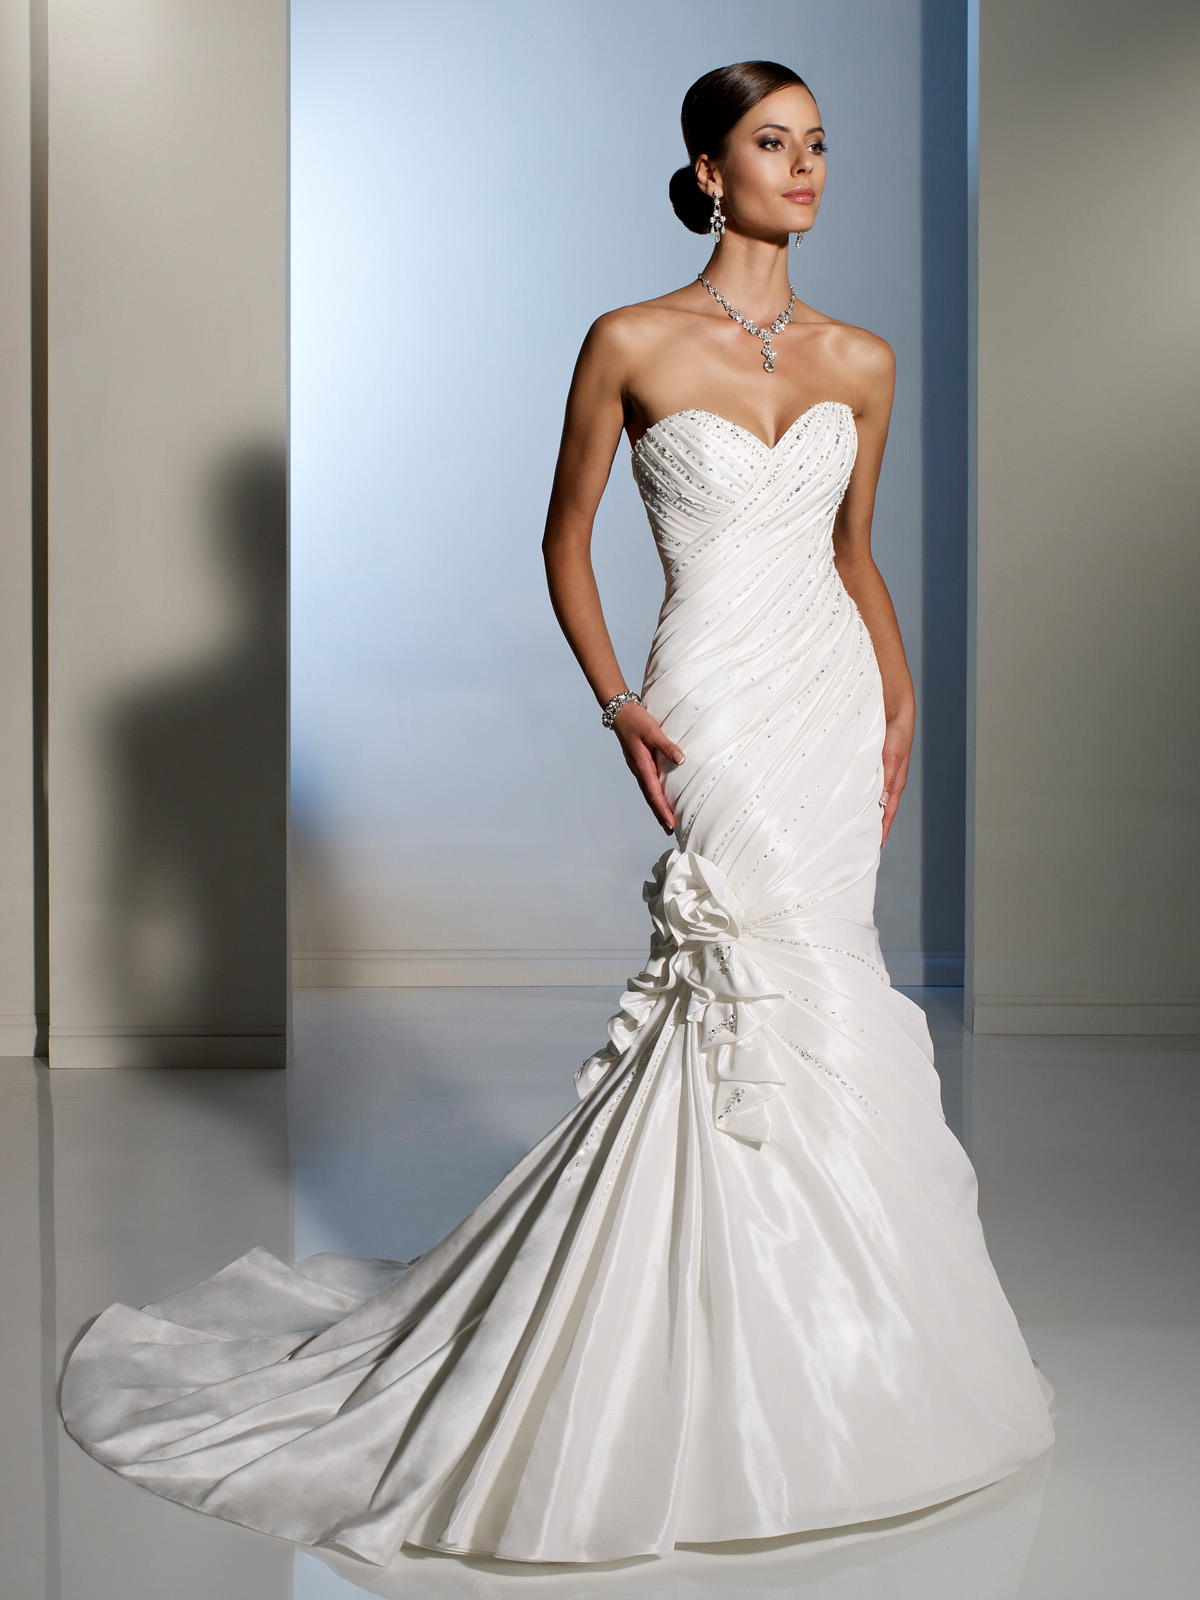 Wedding Planning | Wedding Ideas: Sophia Tolli......Spring 2012 ...